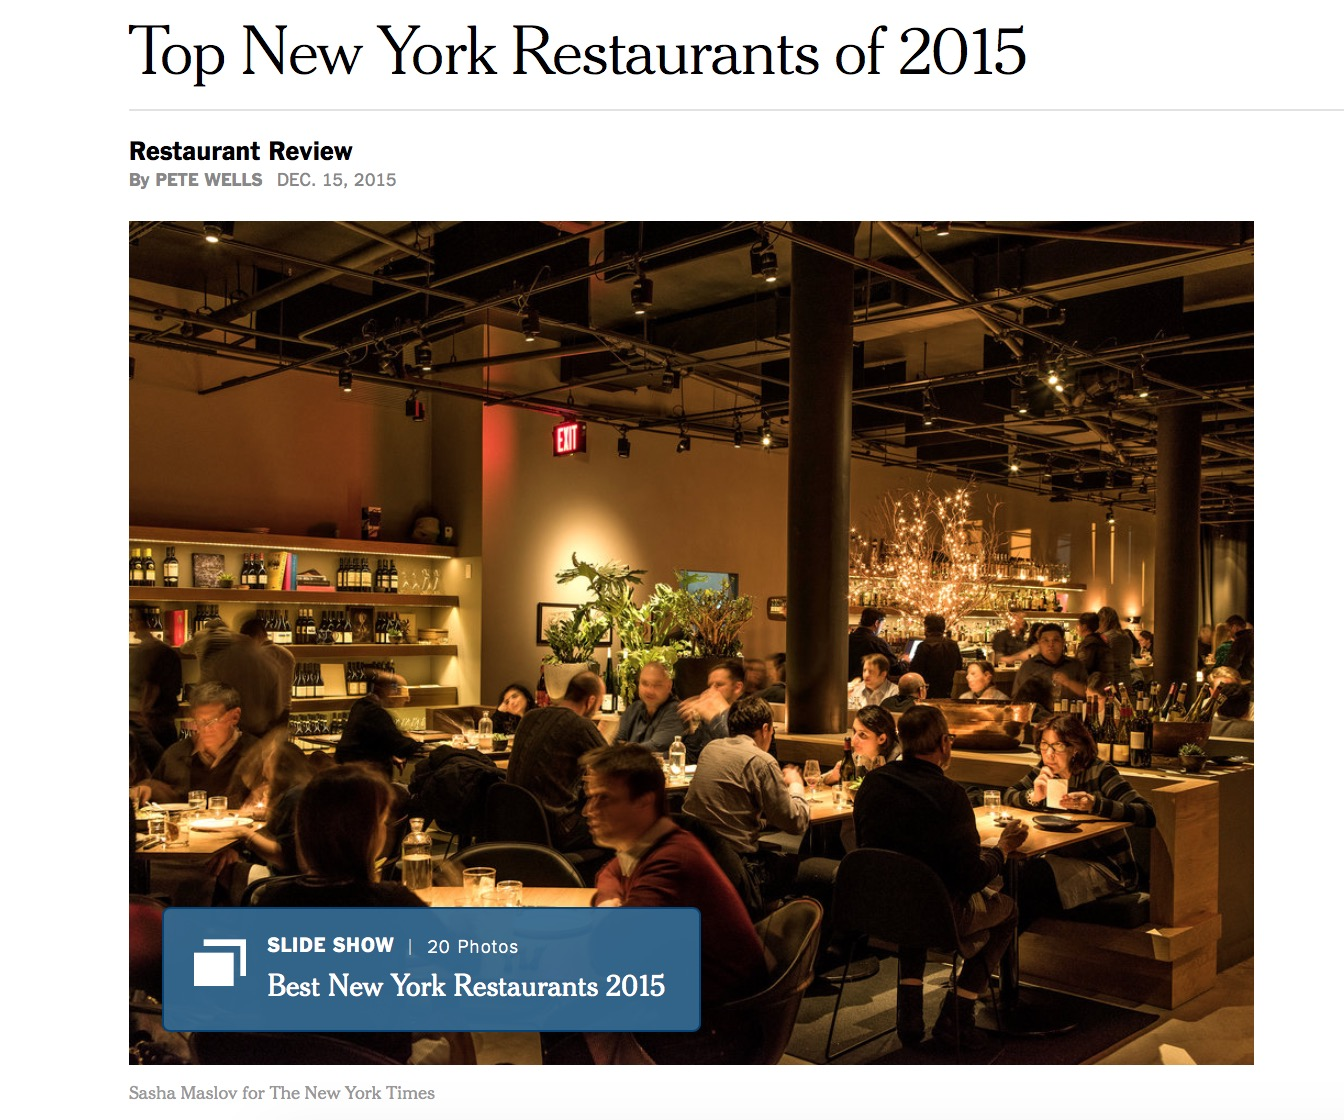 pete wells of the new york times reveals his 2015 top new